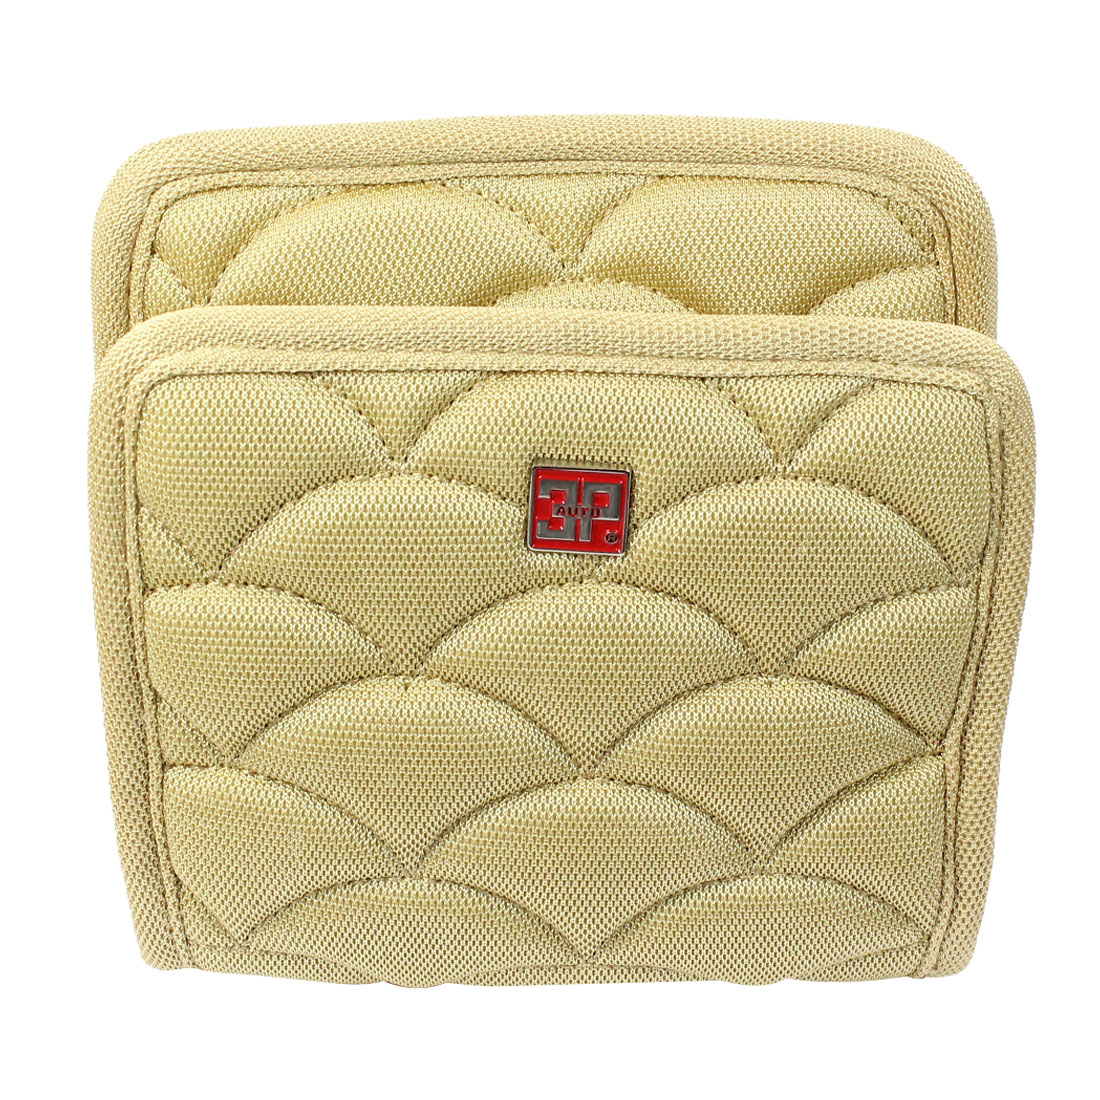 Beige Nylon Cell Phone Storage Sundries Bag for Auto Car